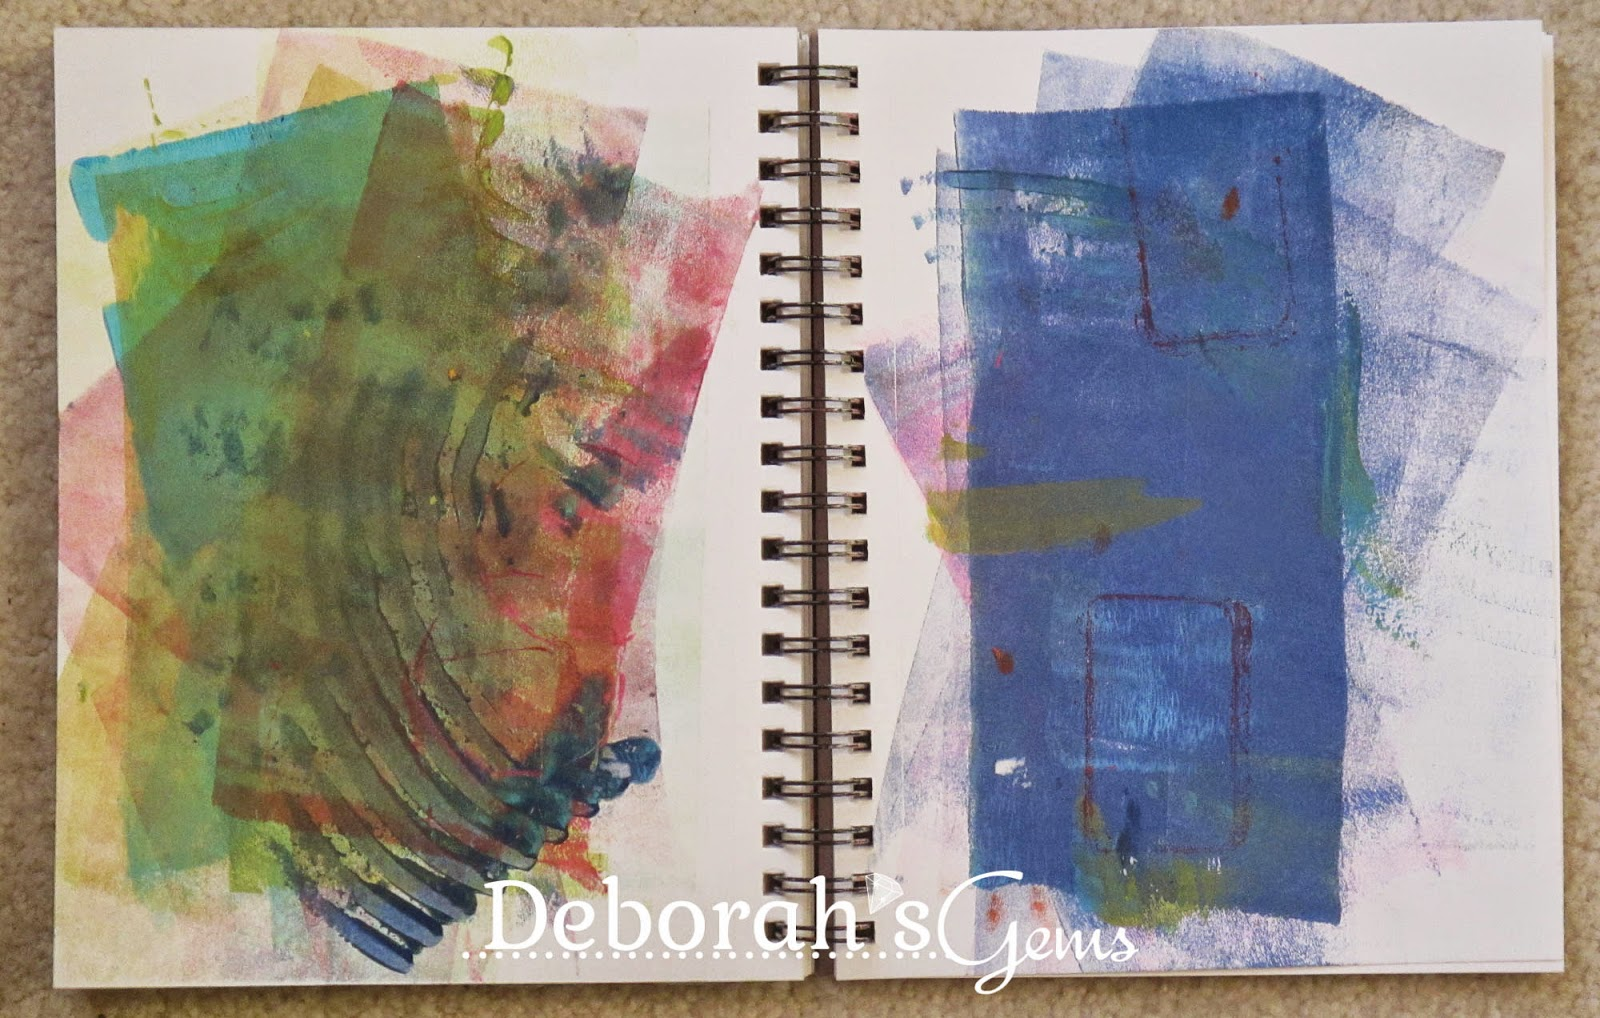 365 Journal 3 - photo by Deborah Frings - Deborah's Gems